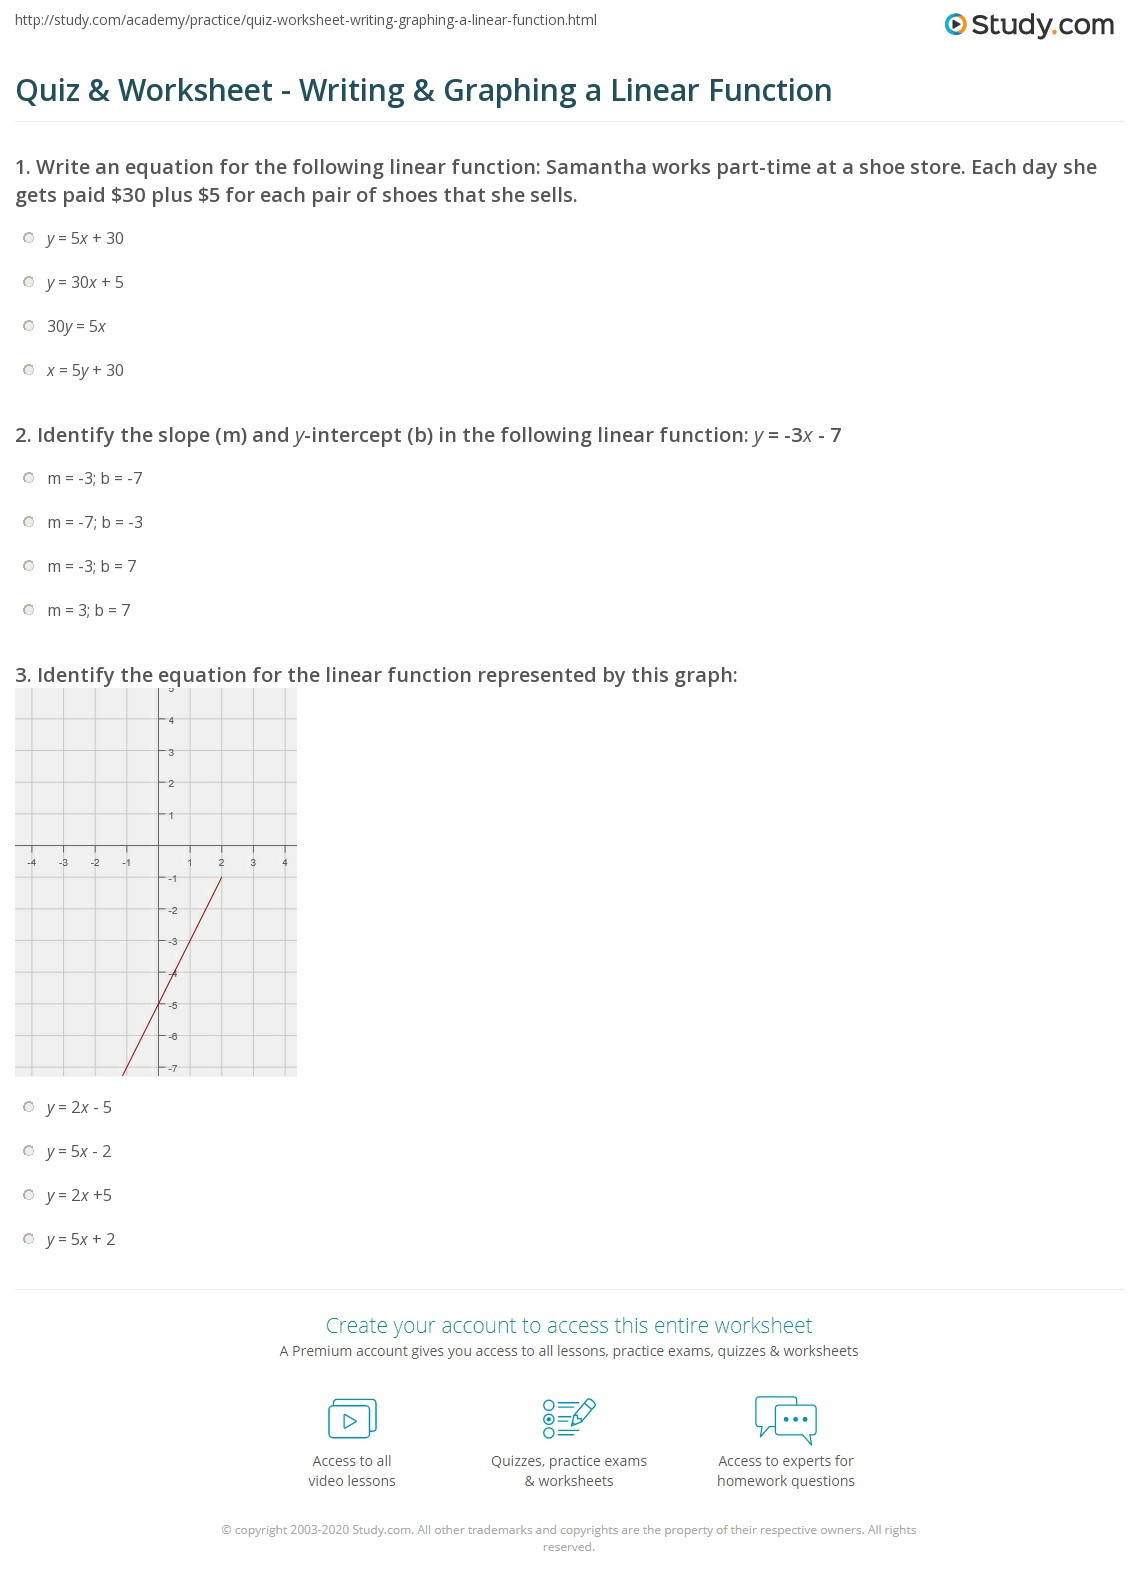 Graphing Linear Functions Worksheet Quiz & Worksheet Writing & Graphing A Linear Function